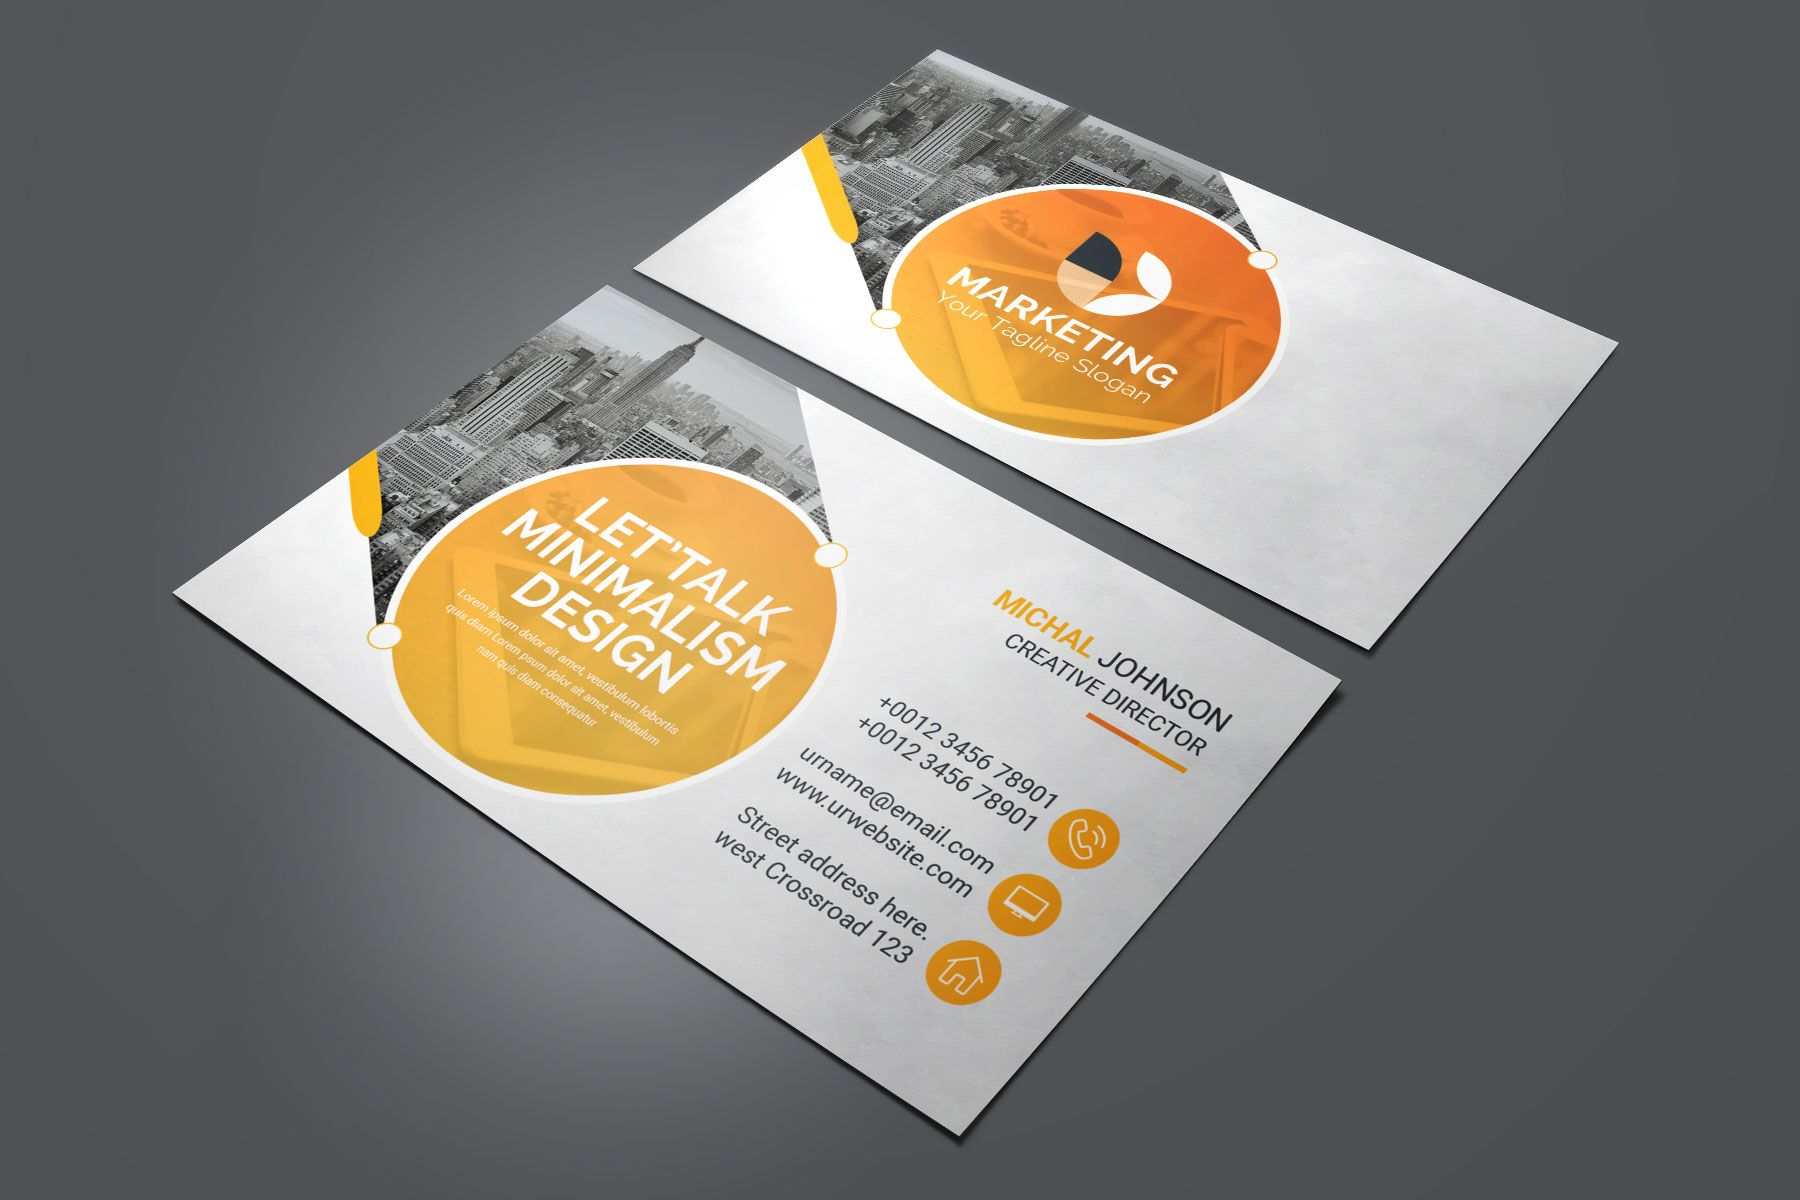 PSD Marketing Business Card is part of Marketing business card, Business card graphic, Corporate business card design, Corporate business card, Business marketing, Business cards - PSD Marketing Business Card Size 46 MB Format PSD Print Dimensions 3 5x2 Files 8 PSD Files Style 4